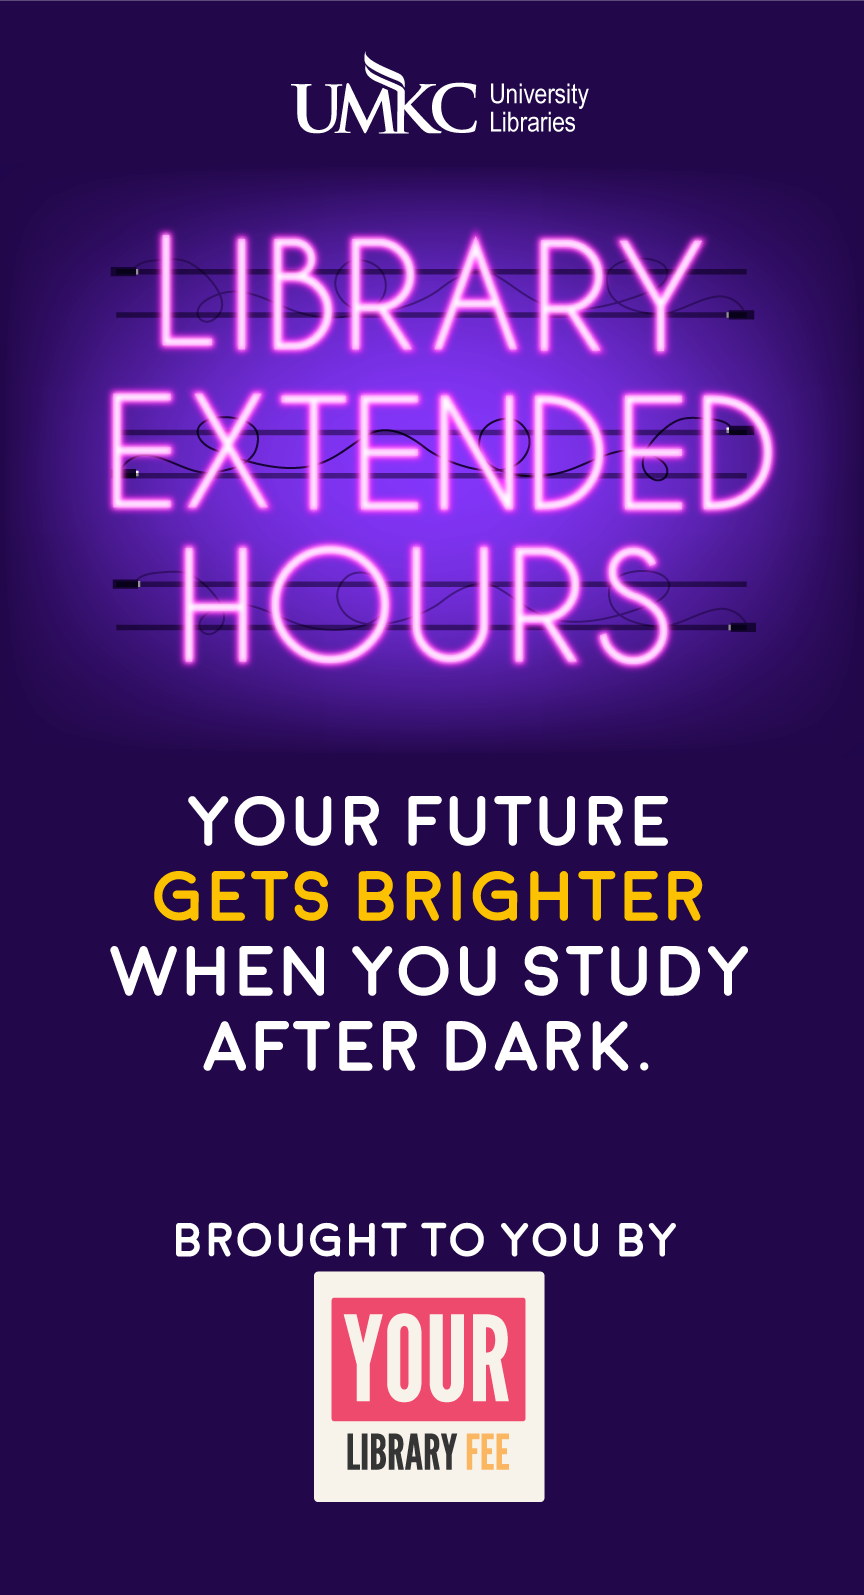 Library Extended Hours Your Future Gets Brighter When You Study After Dark. Brought to you by Your Student Library Fee.